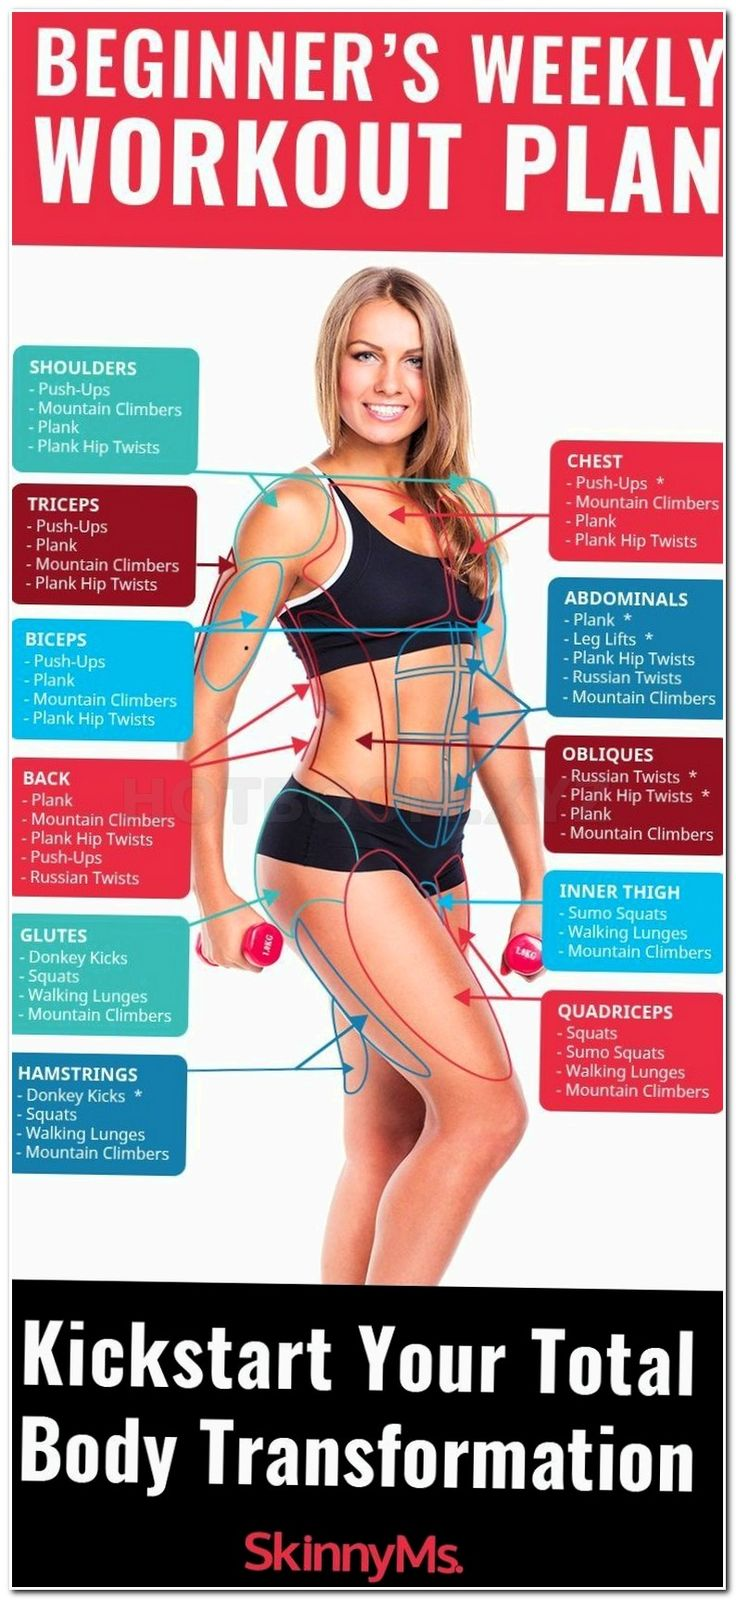 curves for women location, 10 dollar fitness, best home exercises for abs, gyms in cork ireland, j womens healt, carmel fitness cente, best muscle building workout plan, quick weight loss tricks, female fitness models australia, male model workout and die